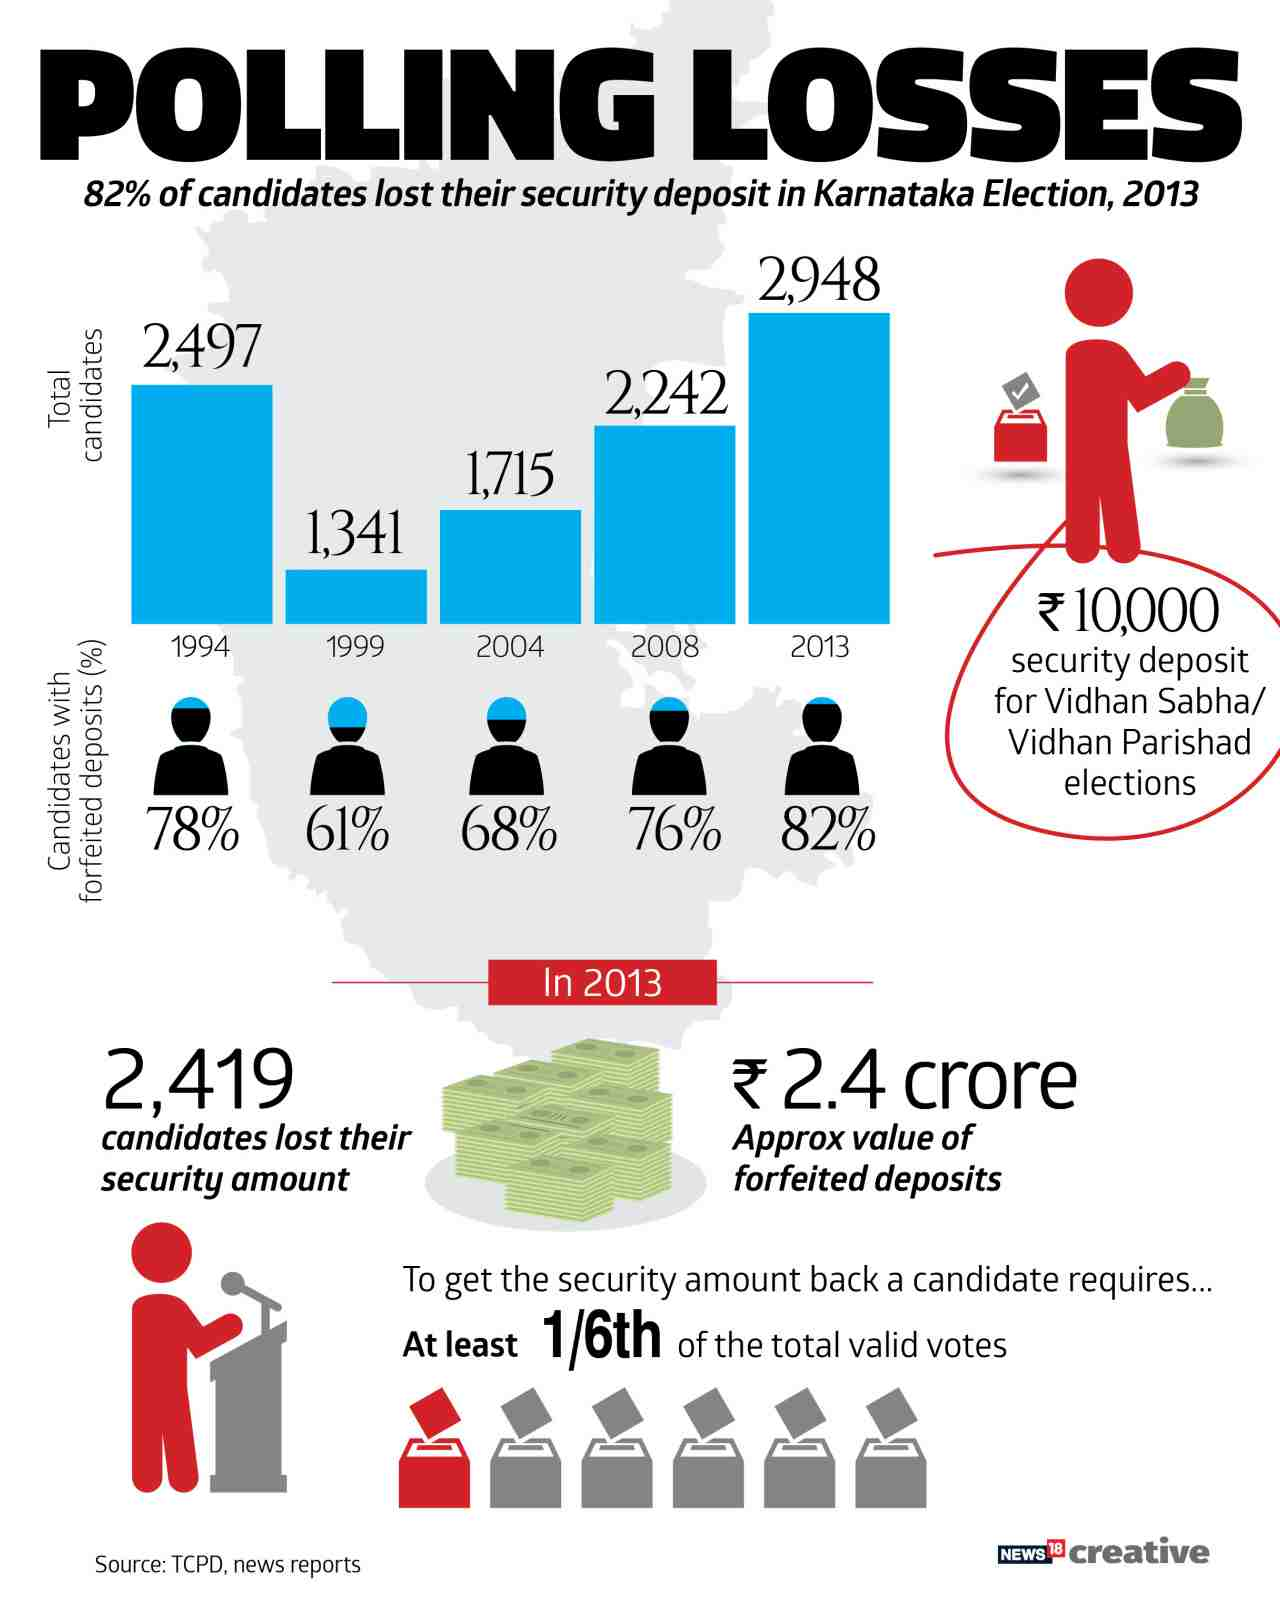 Security Deposit | Since 1999 assembly election, the number of candidates losing their security deposit with the EC has consistently risen. The trend, in a first look, implies that contest in Karnataka has gradually narrowed down to a few major candidates.